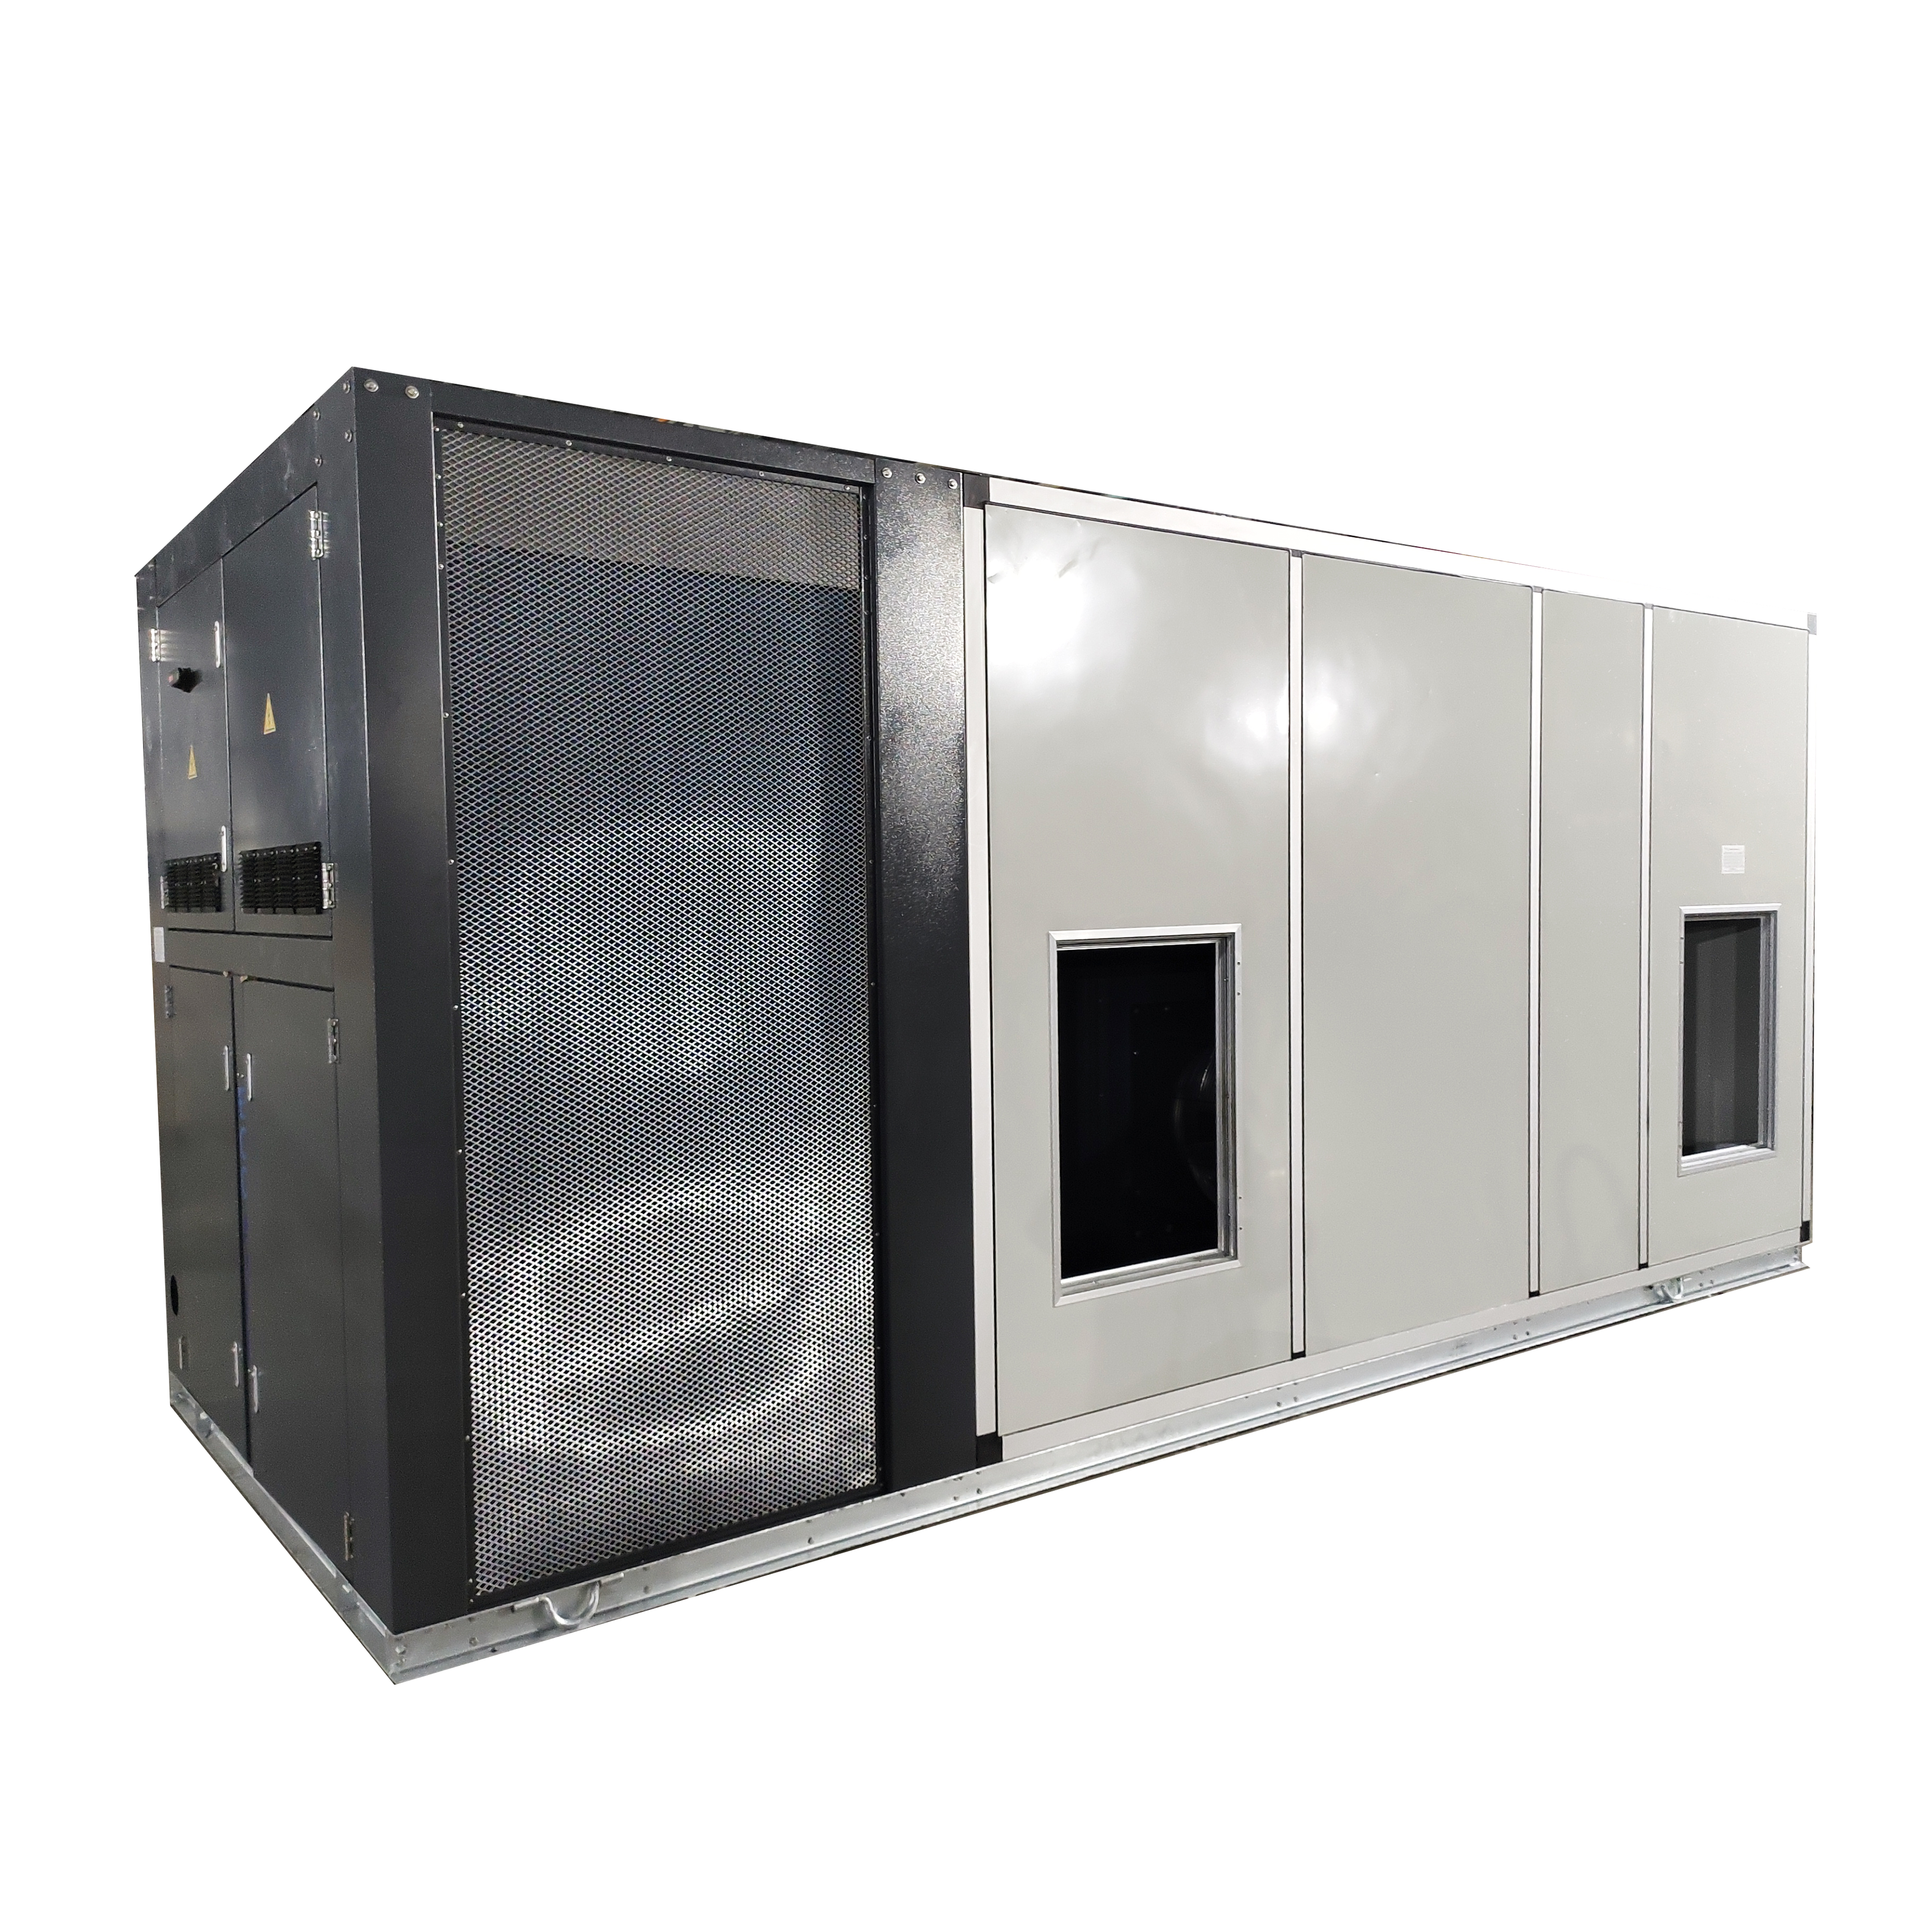 Compressor Condensing Unit Rooftop Package Unit Ac Buy Compressor Condensing Unit Rooftop Package Unit Ac Condenser Unit For Air Conditioner Product On Alibaba Com